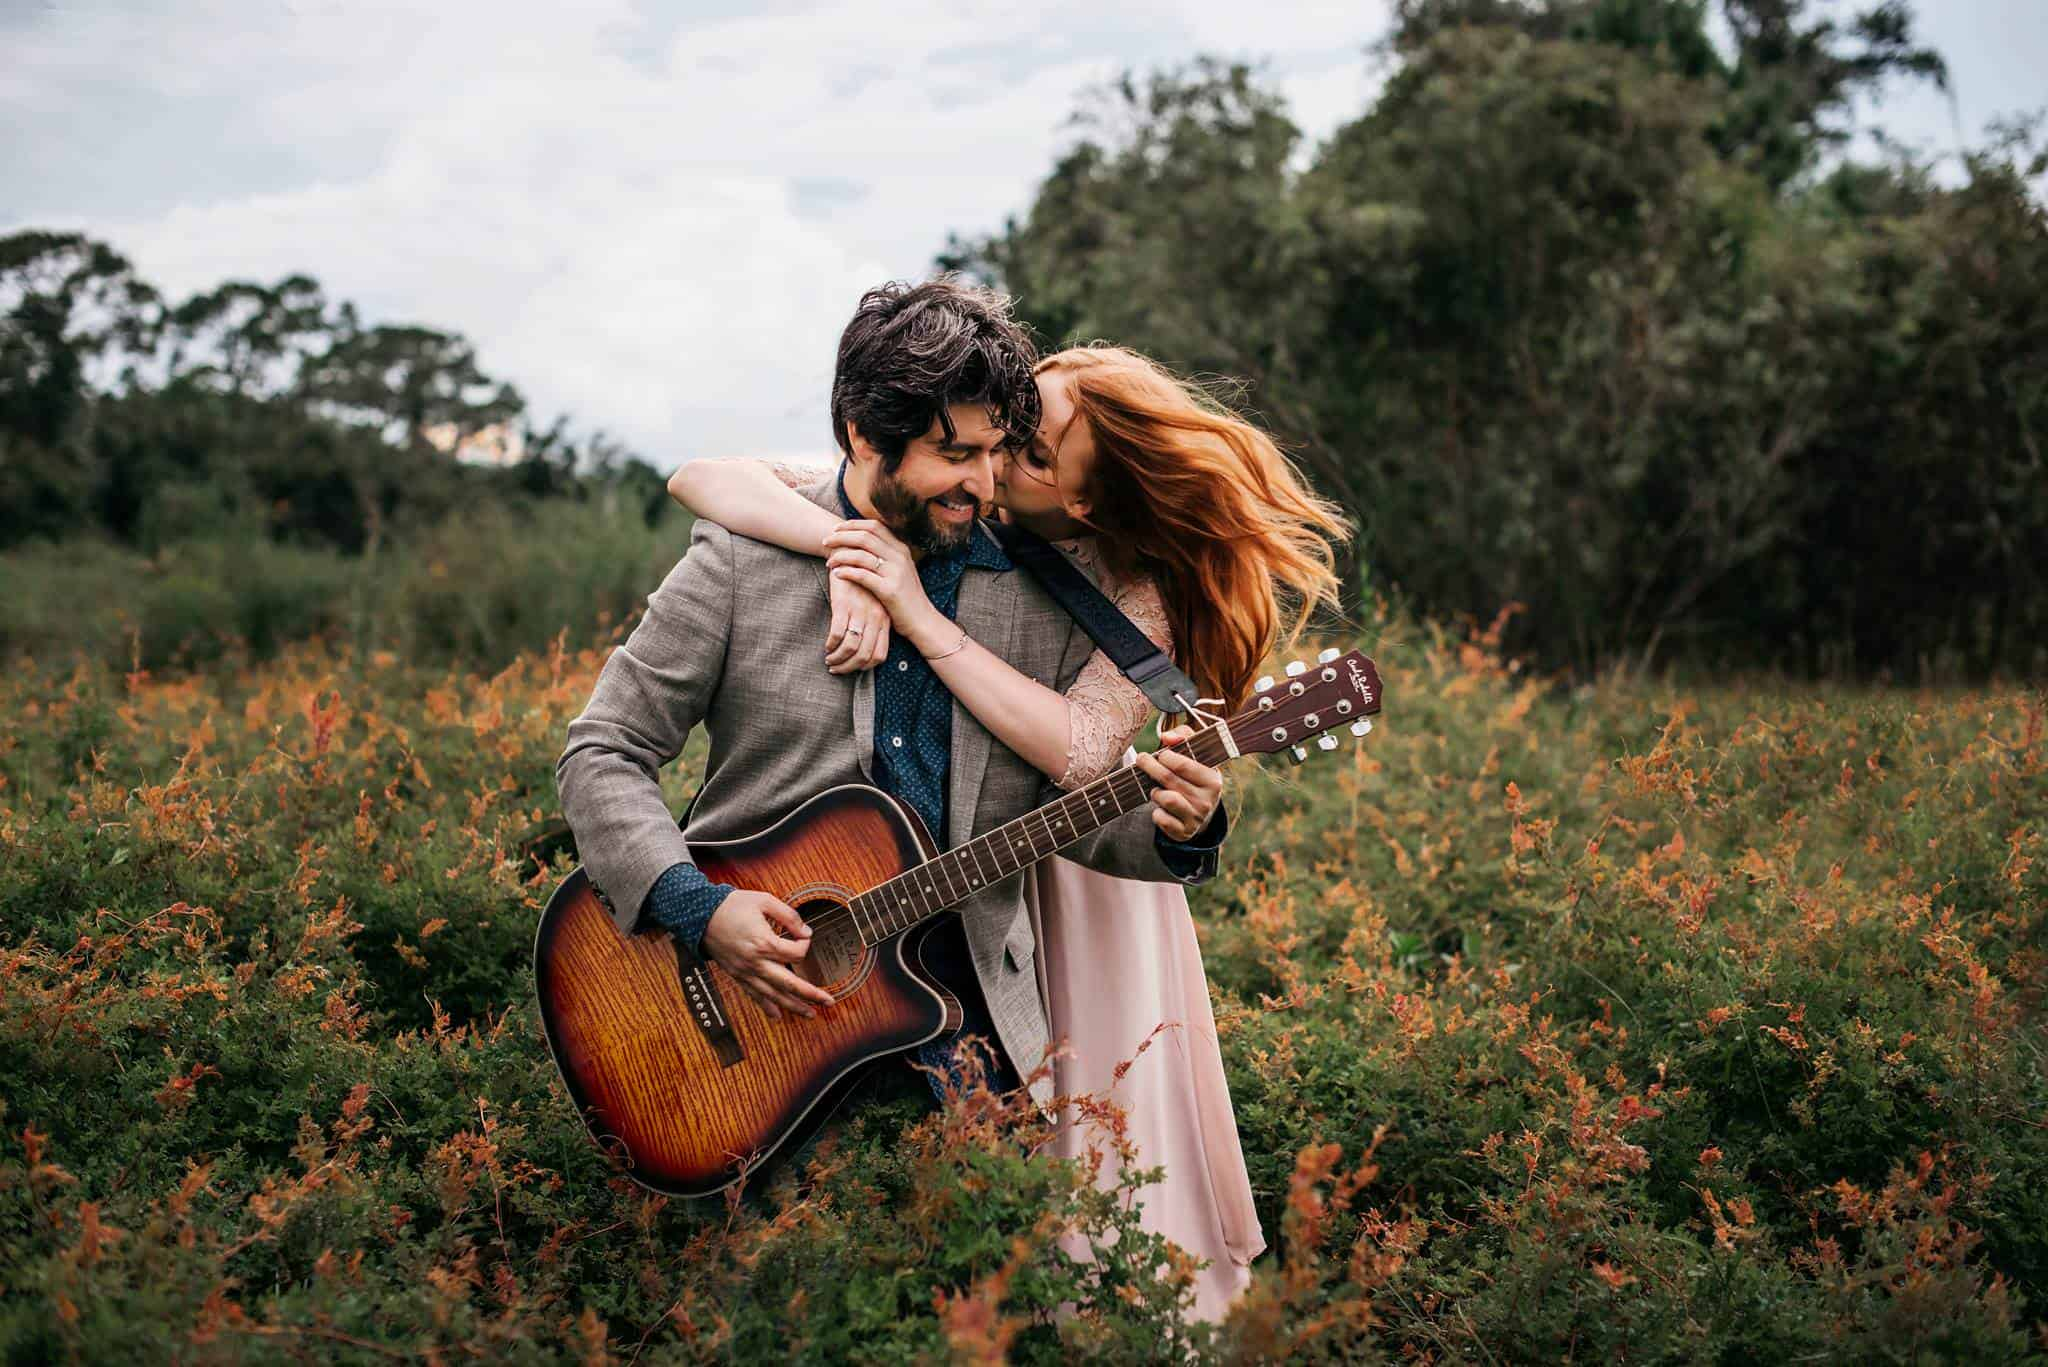 A girl holding her man while he is playing a guitar